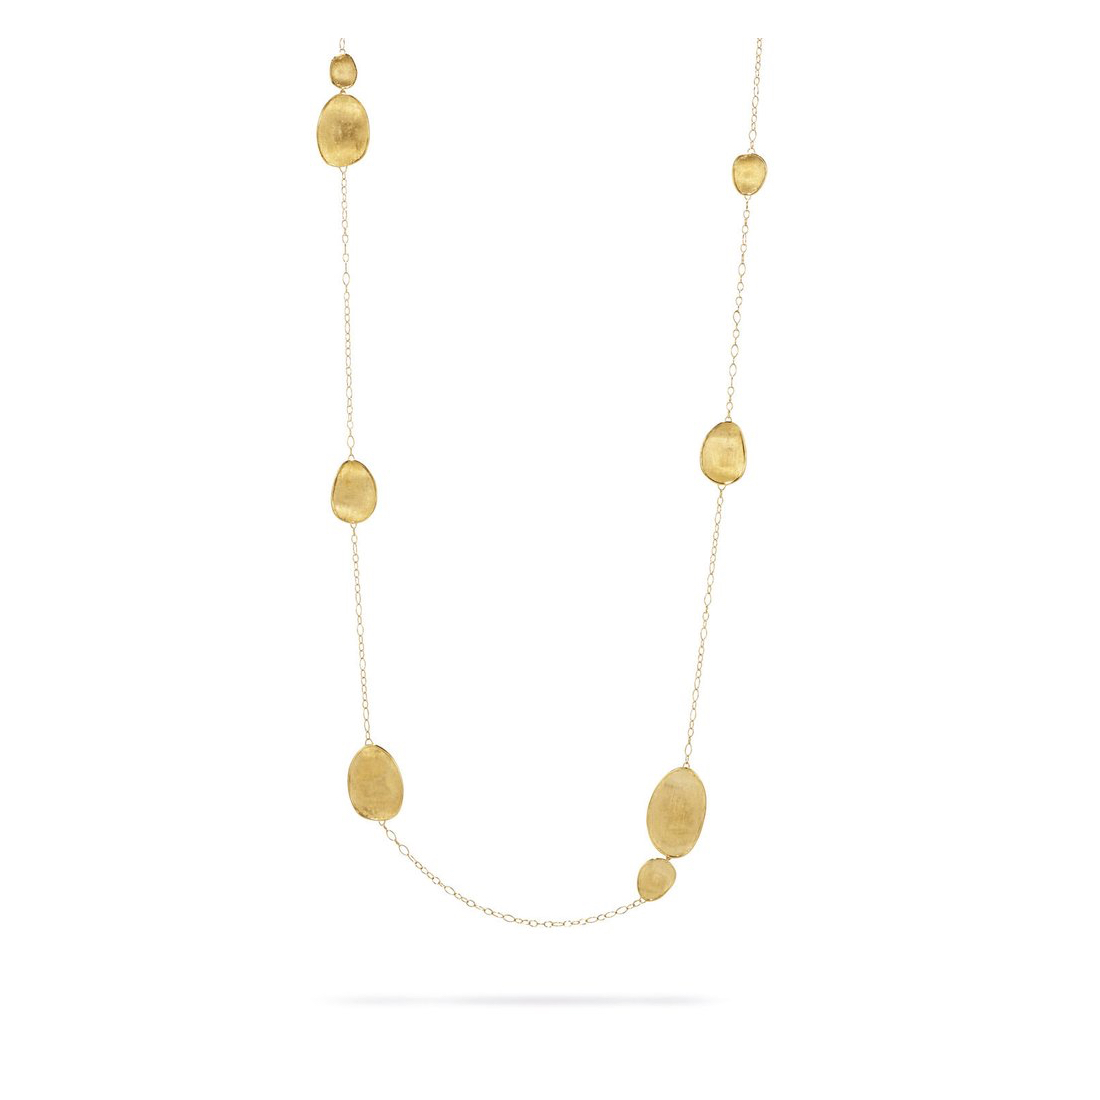 Lunaria Long Gold Necklace CB1791Y02 36 Inches by Marco Bicego Marshall Pierce & Company